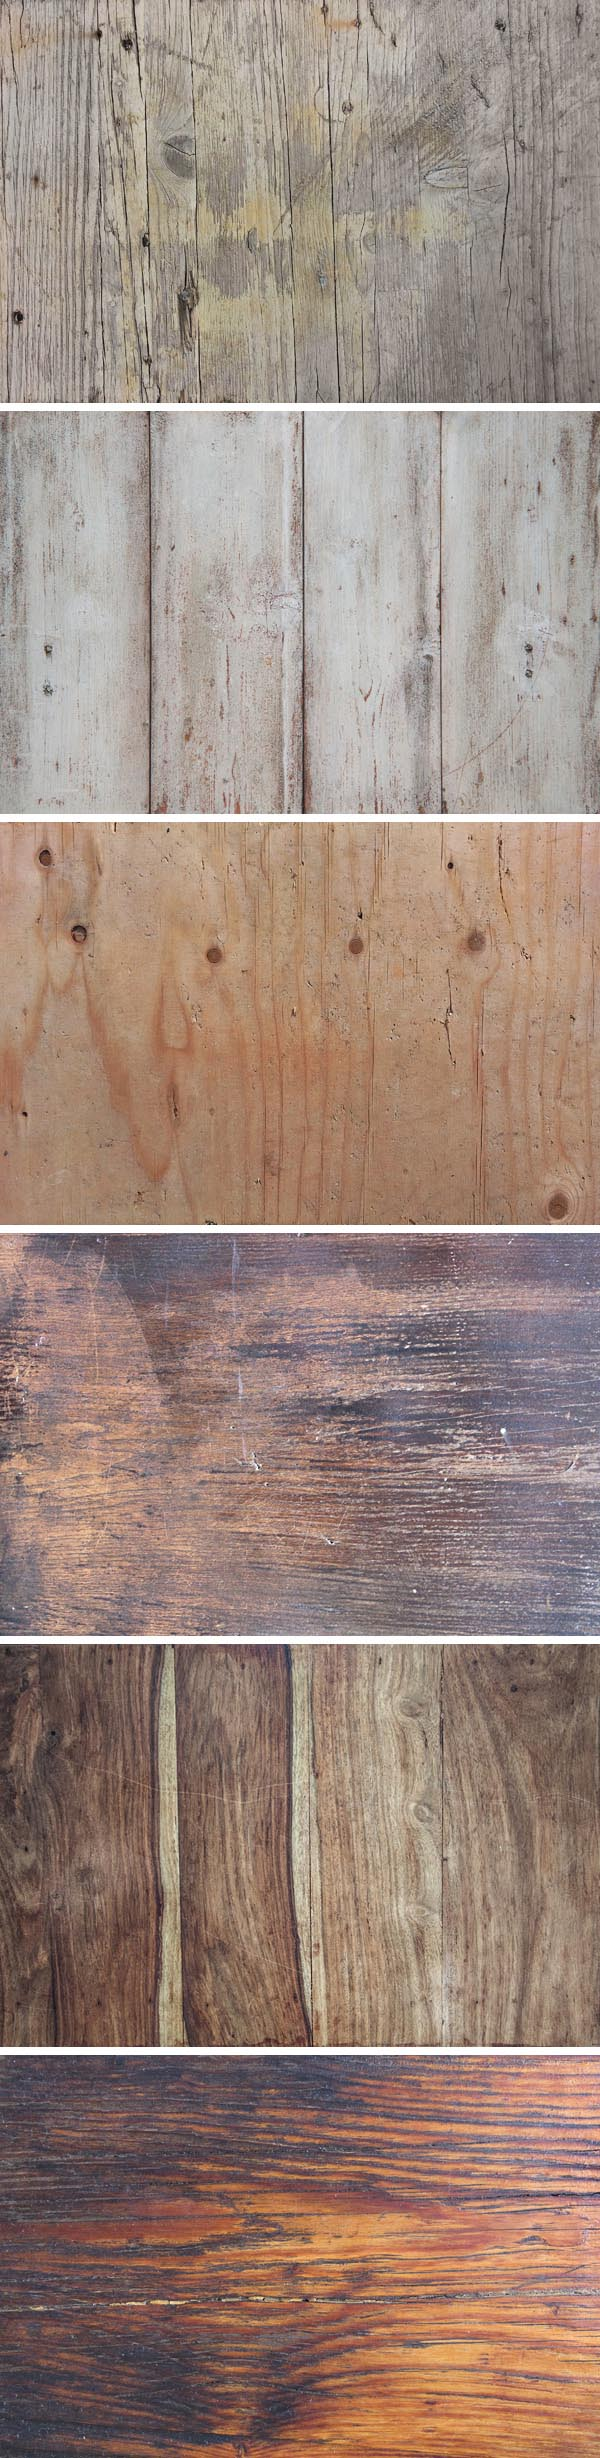 Free 6 Vintage Wood Textures Backgrounds